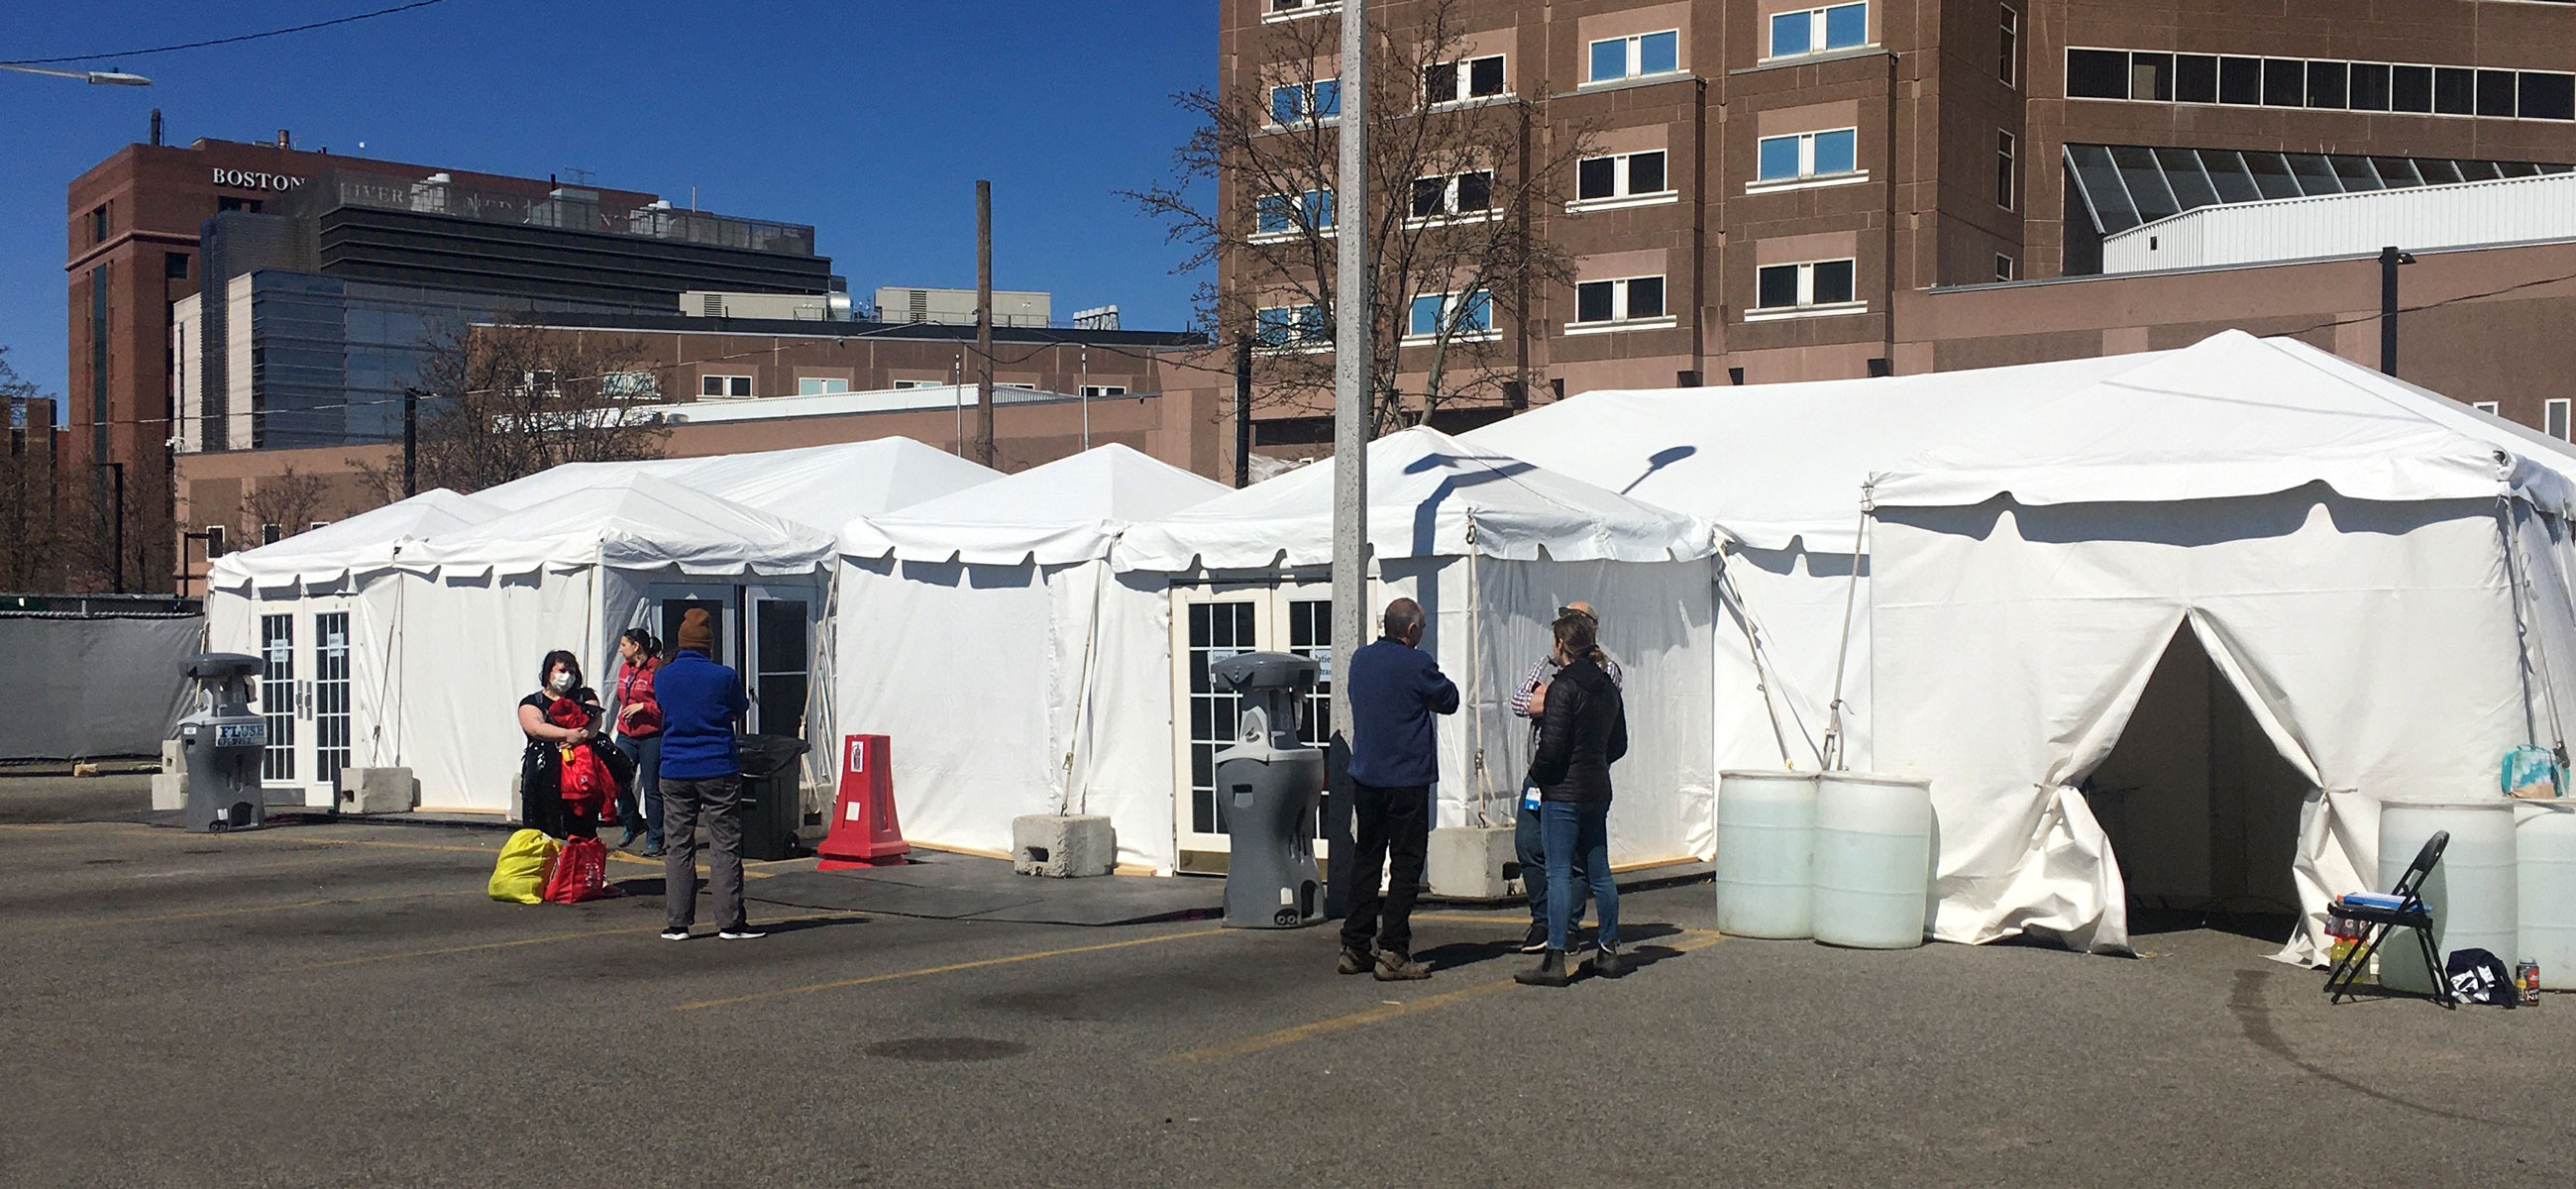 Testing tents for people experience homelessness in Boston, MA